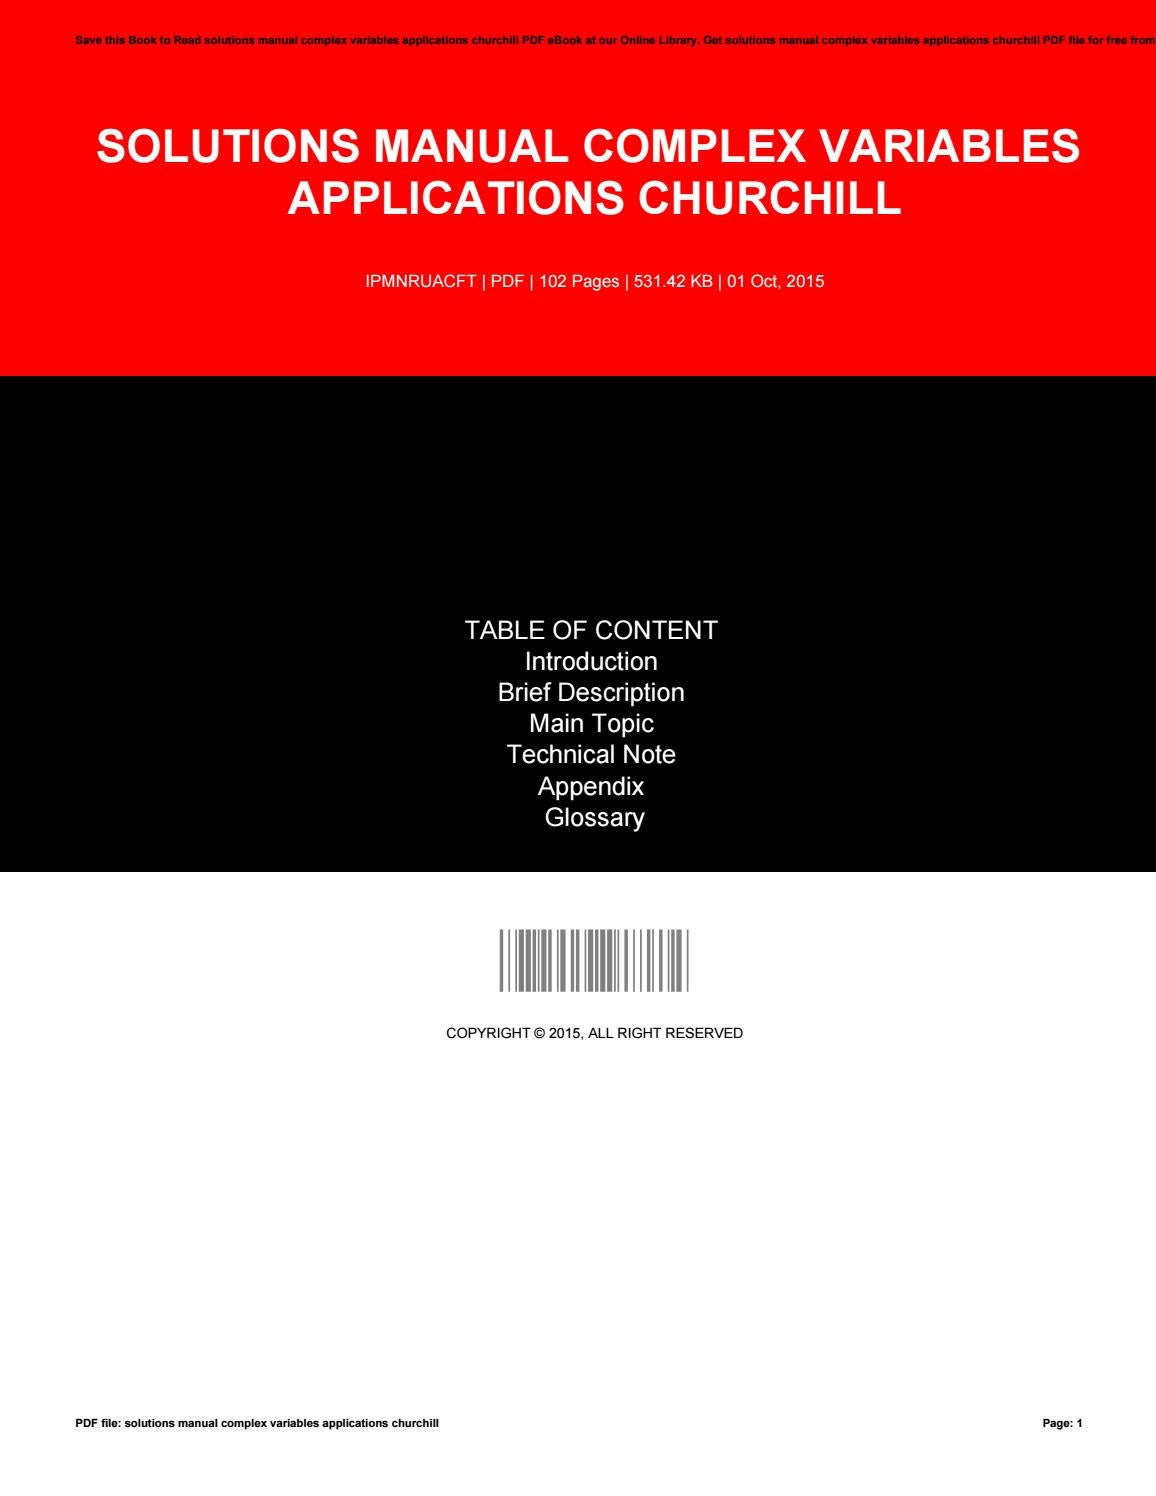 Solutions manual complex variables applications churchill by mailed619 -  issuu